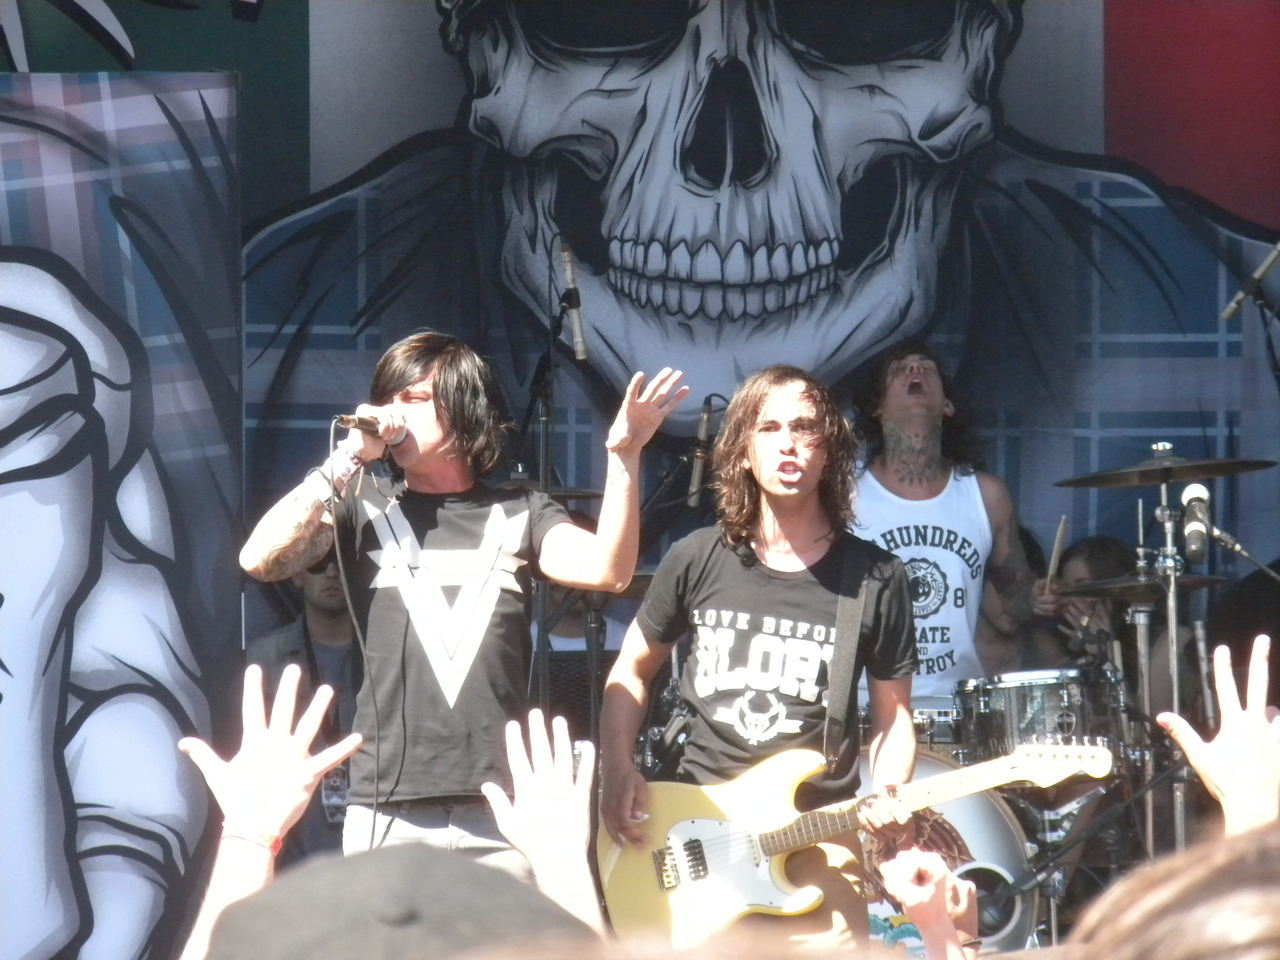 Vic Fuentes Singing King For A Day King For A Day Vic fuentesVic Fuentes Singing King For A Day